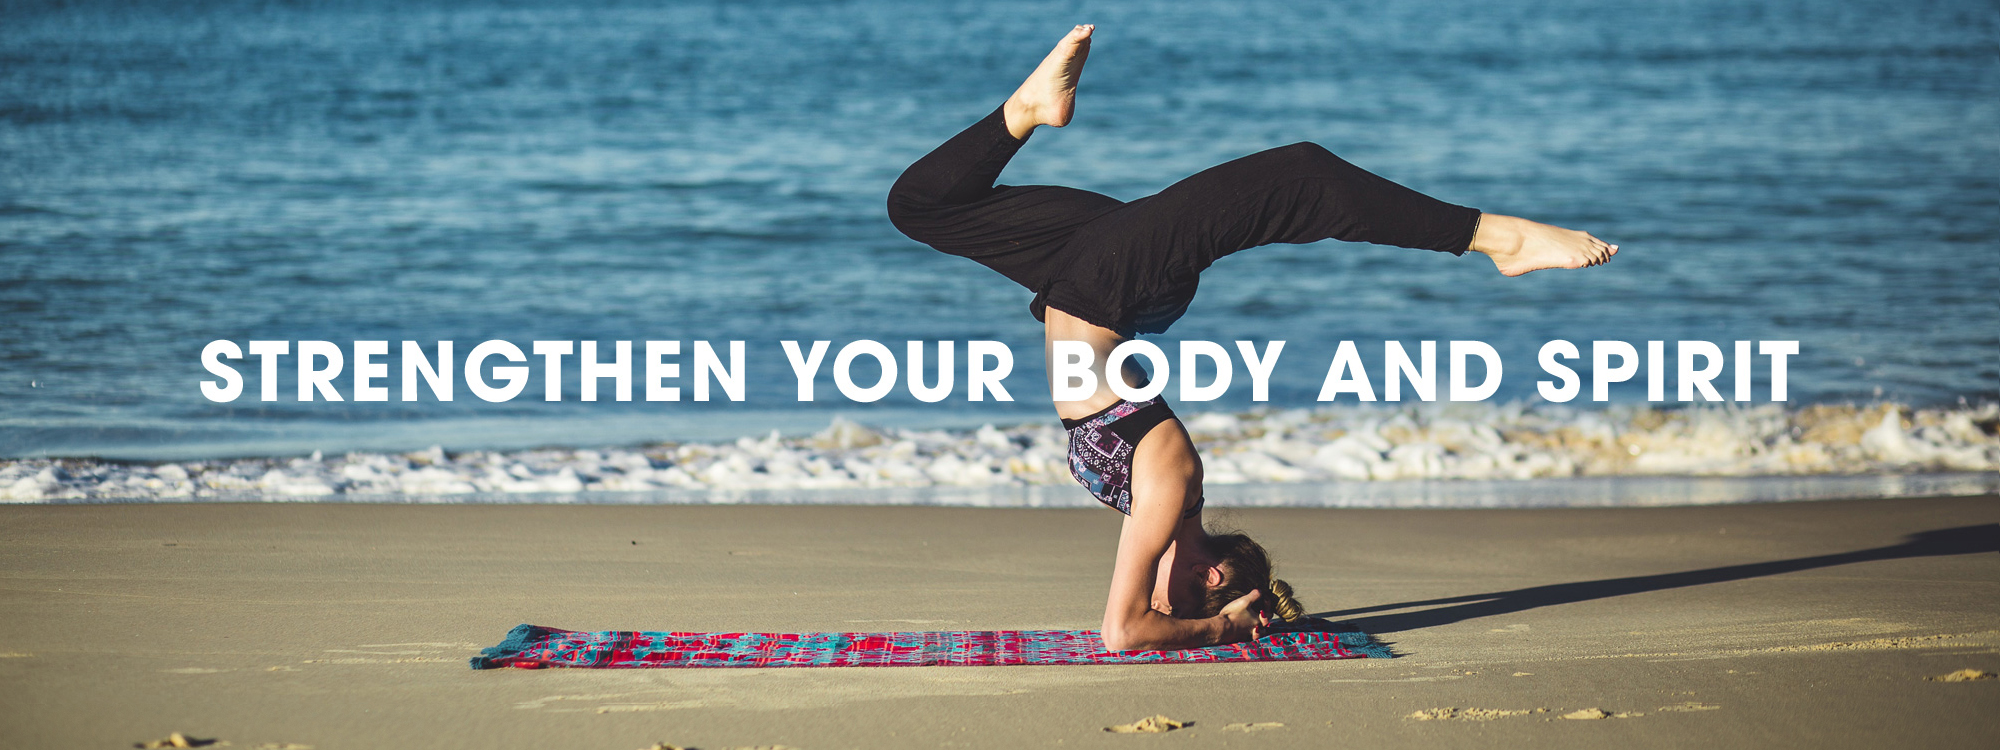 Strengthen your Body and Spirit - Contact us today!